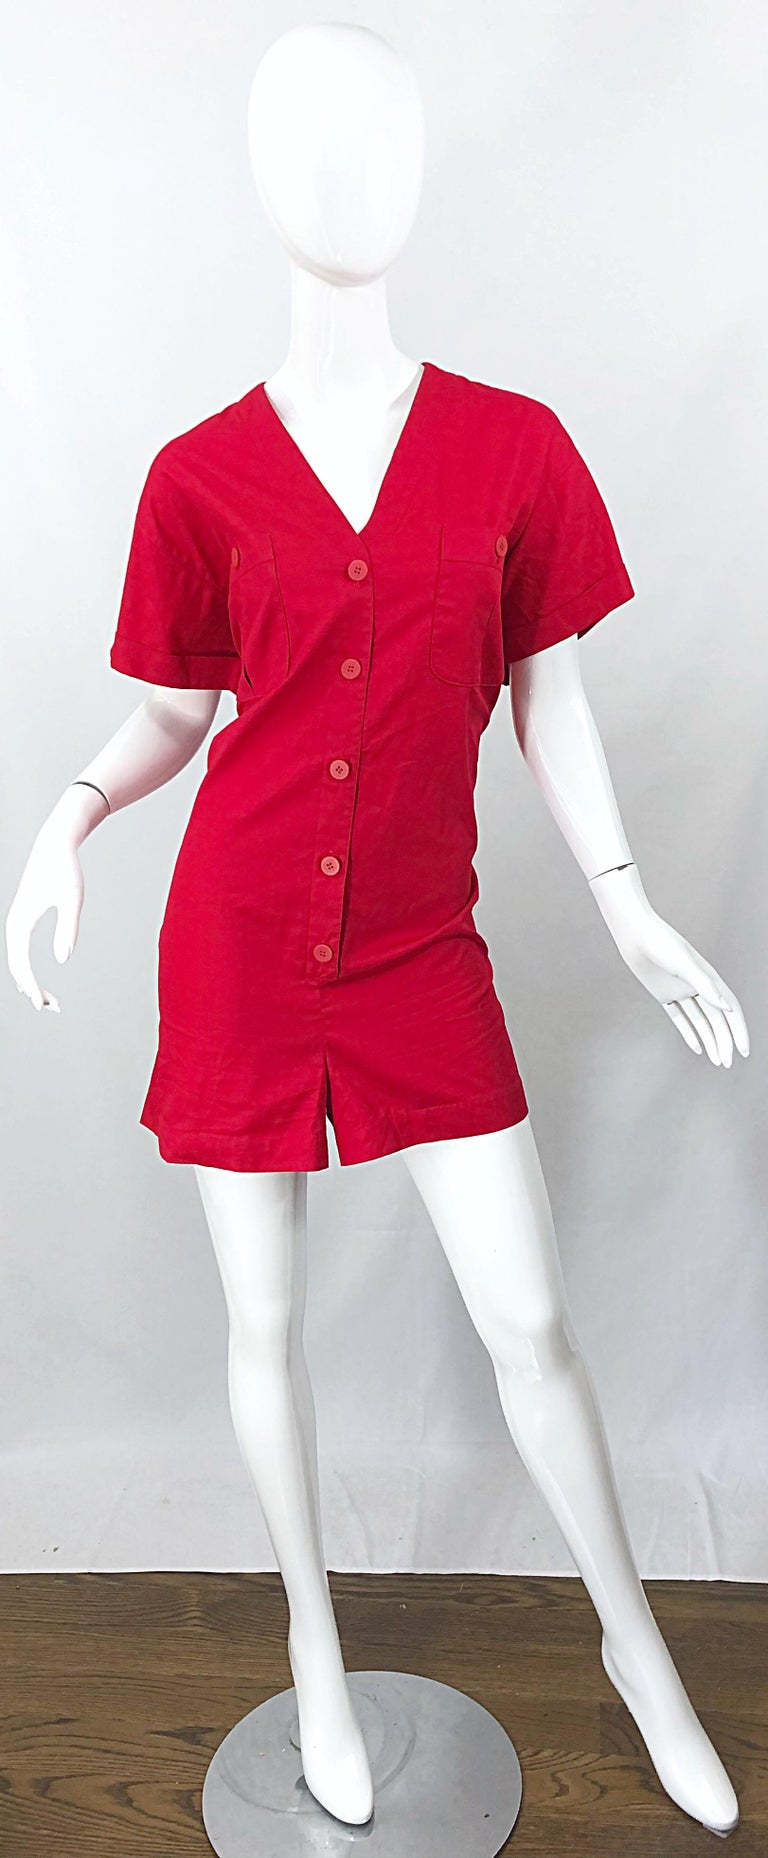 NWT Vintage Christian Dior Romper Size 14 Lipstick Red Cotton One Piece Jumpsuit For Sale 8